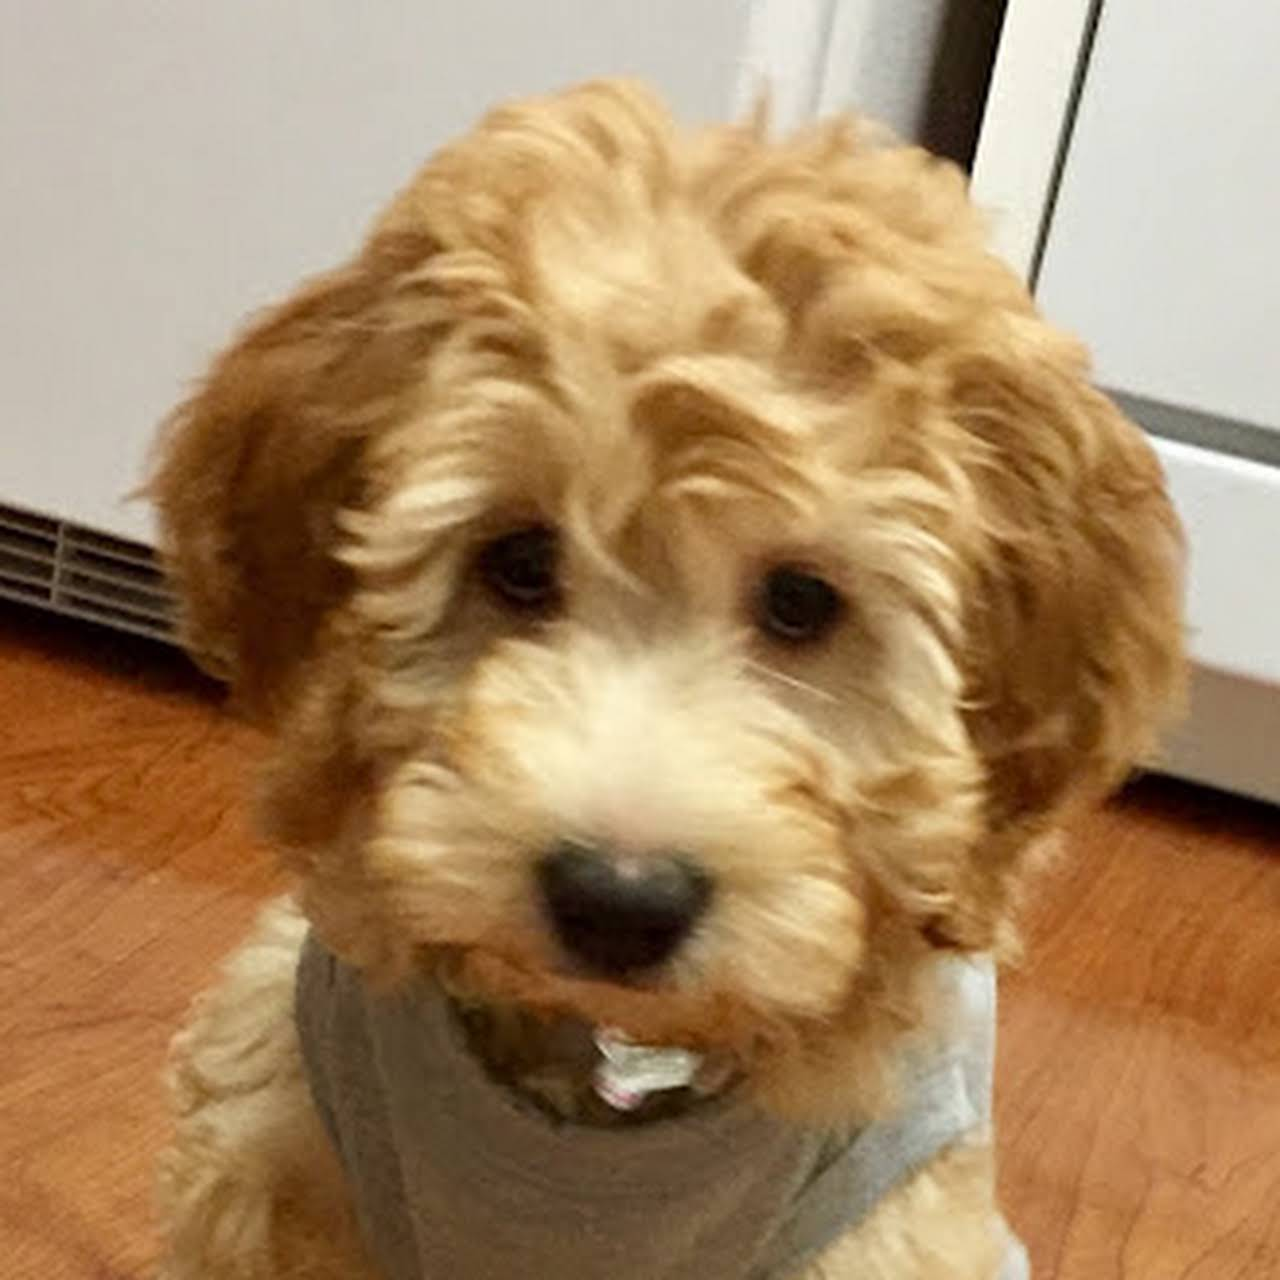 Tennessee Goldendoodles - Pet Adoption Service in Clarksville